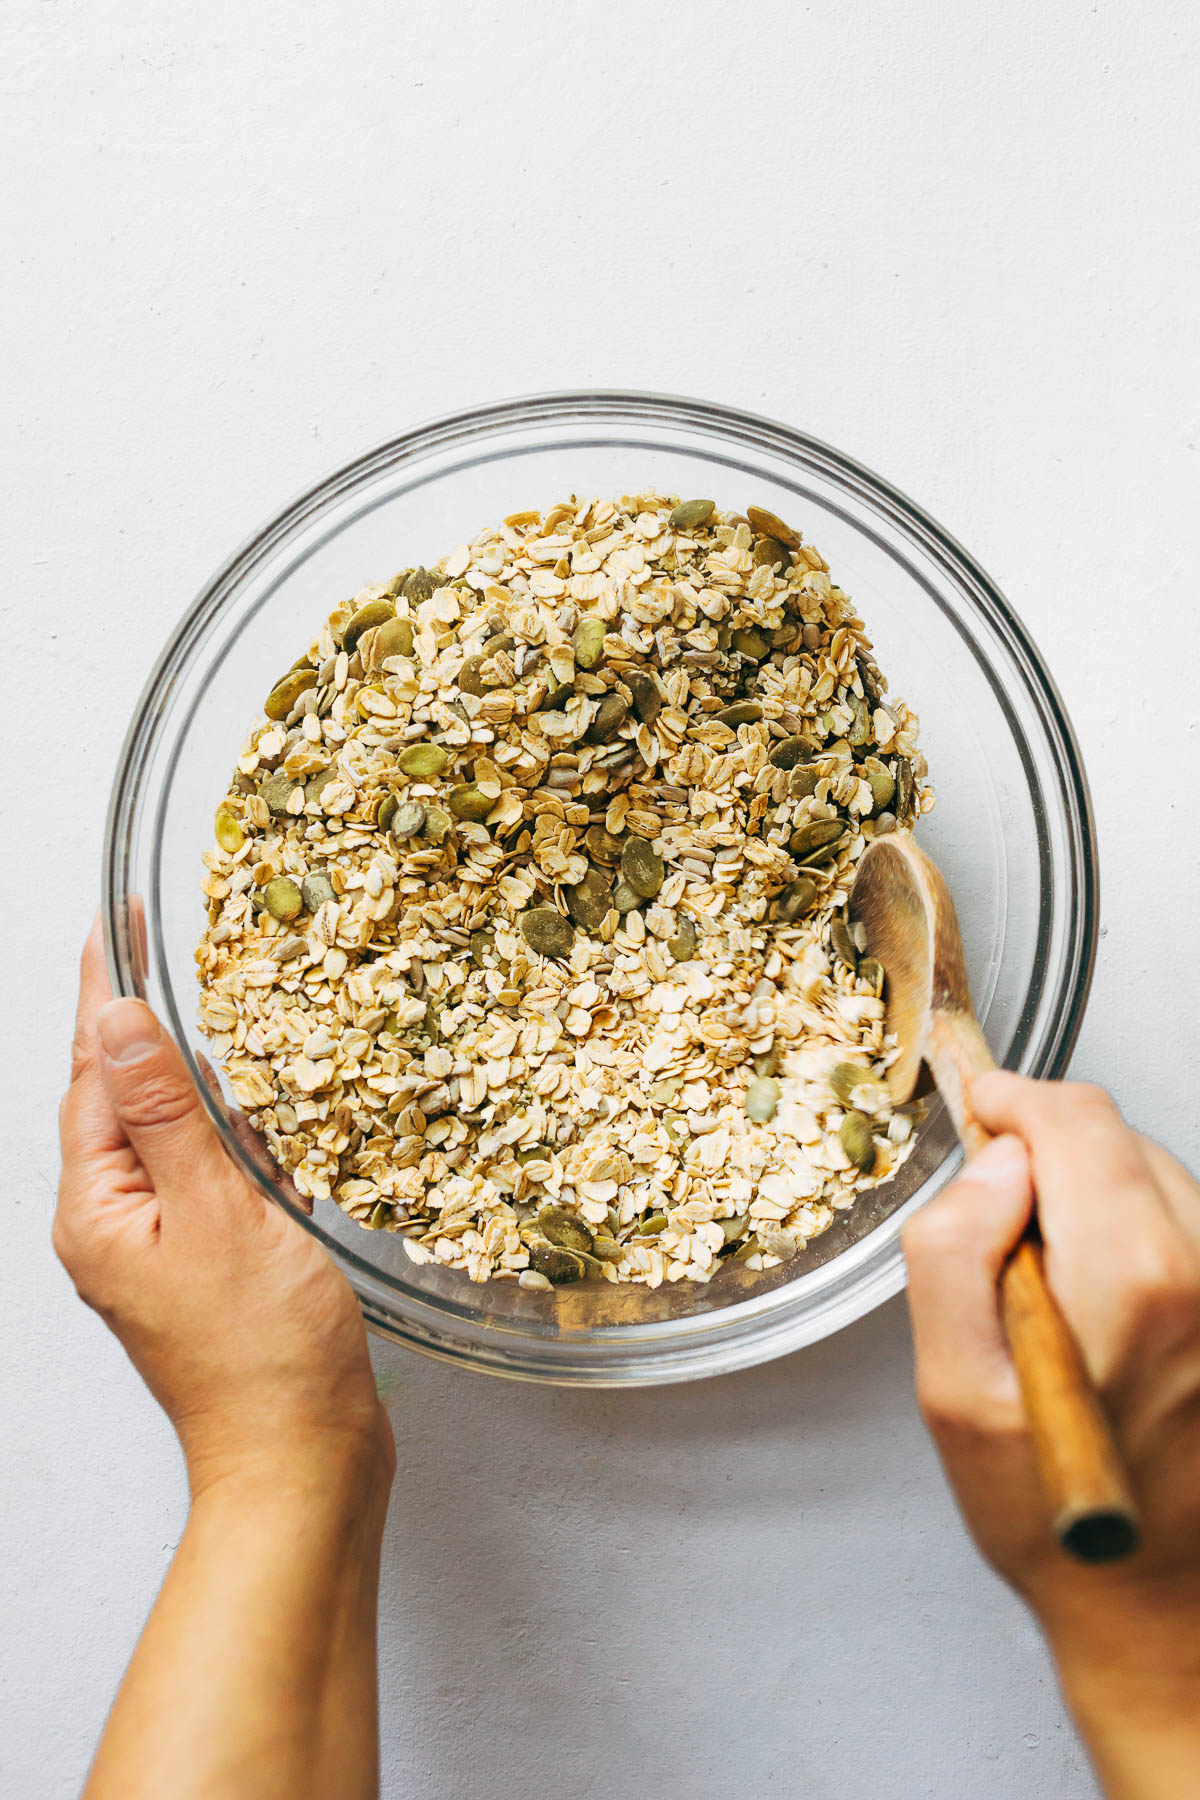 A hand mixing oats and seeds with a wooden spoon in a large glass bowl.